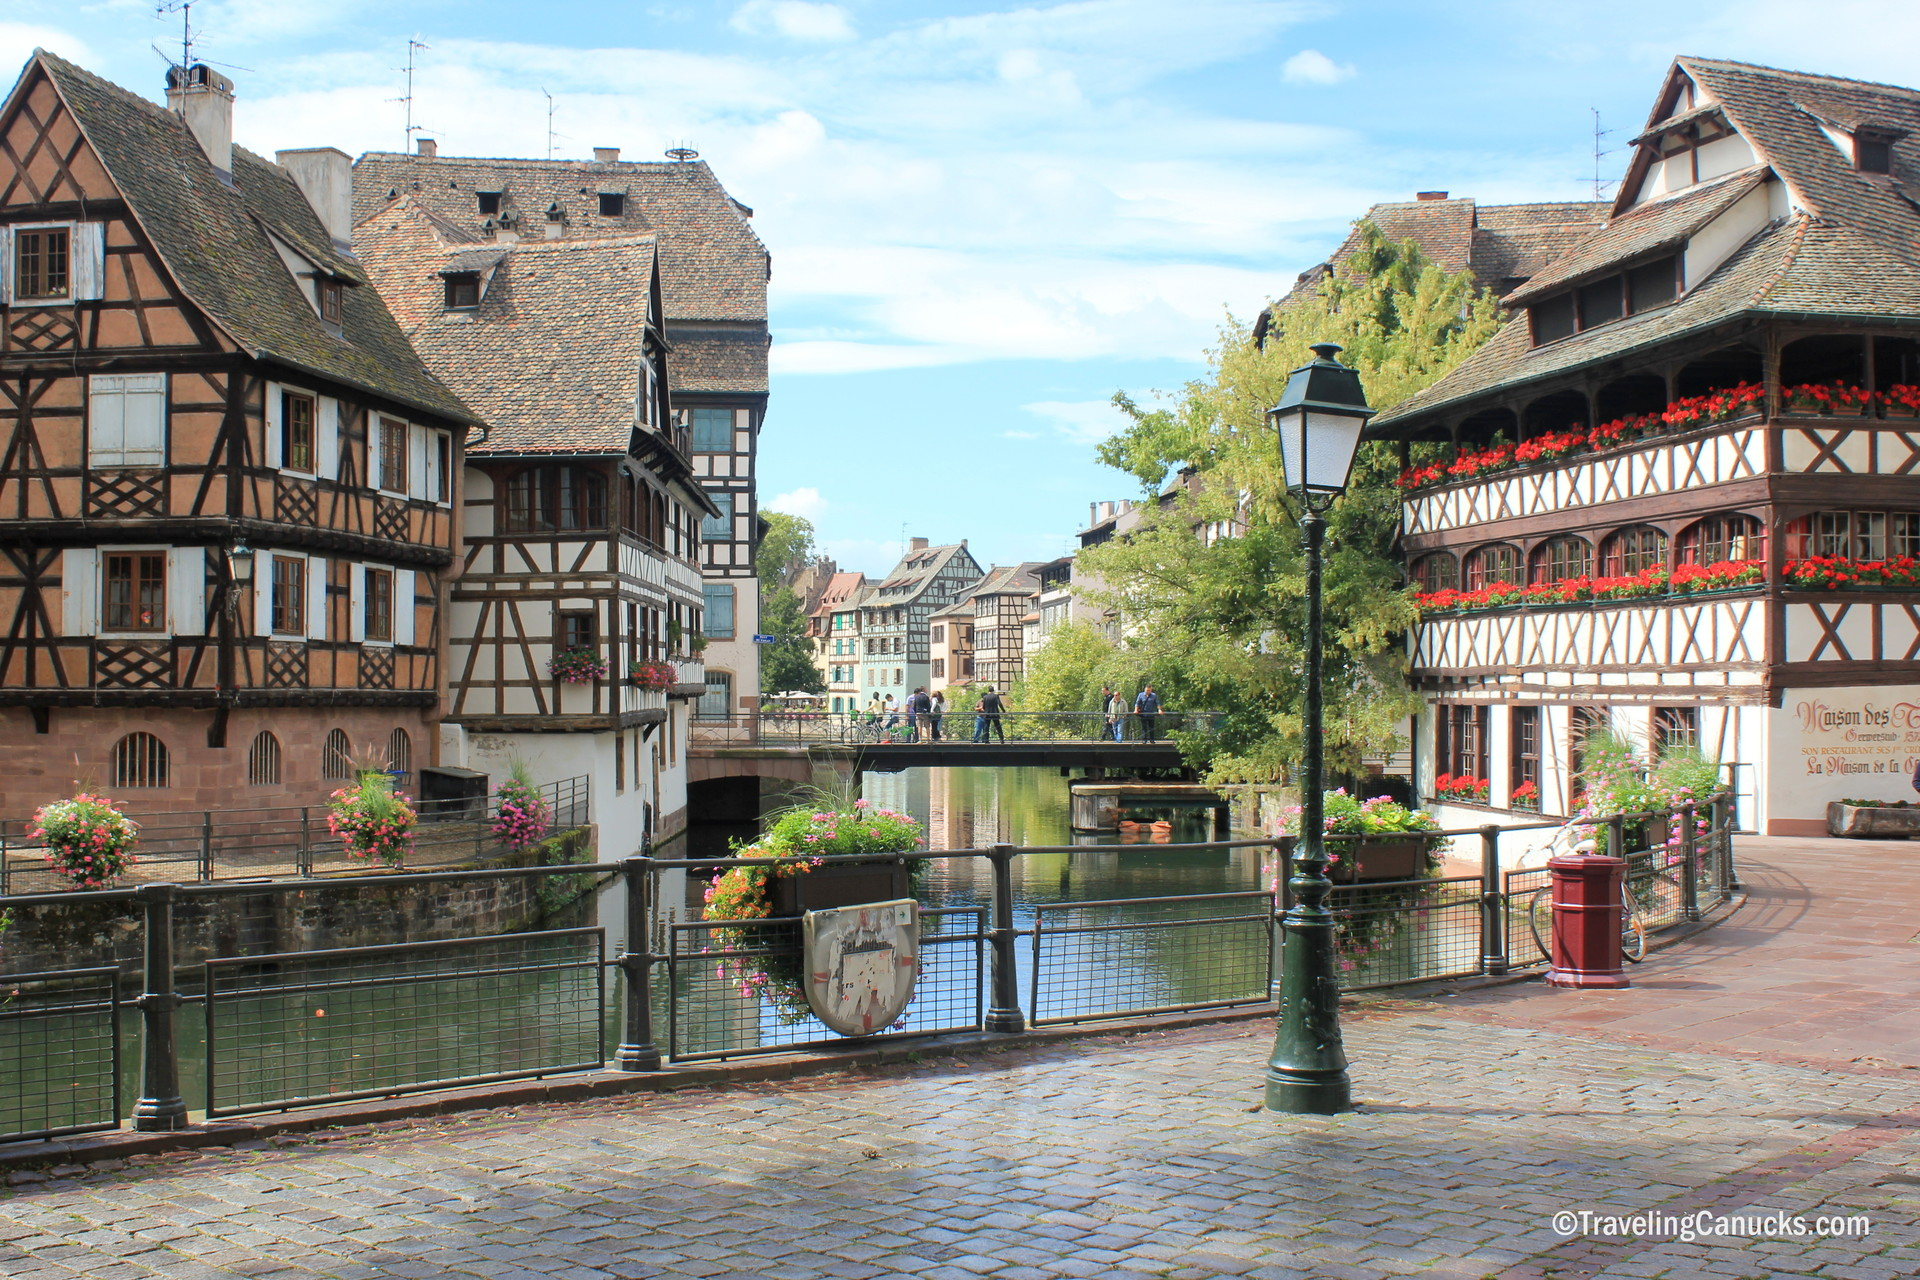 strasbourg big and beautiful singles Sensational value coach holidays from glasgow with caledonian travel, the #1 coach trips and tours specialist from scotland ☆ book yours today .